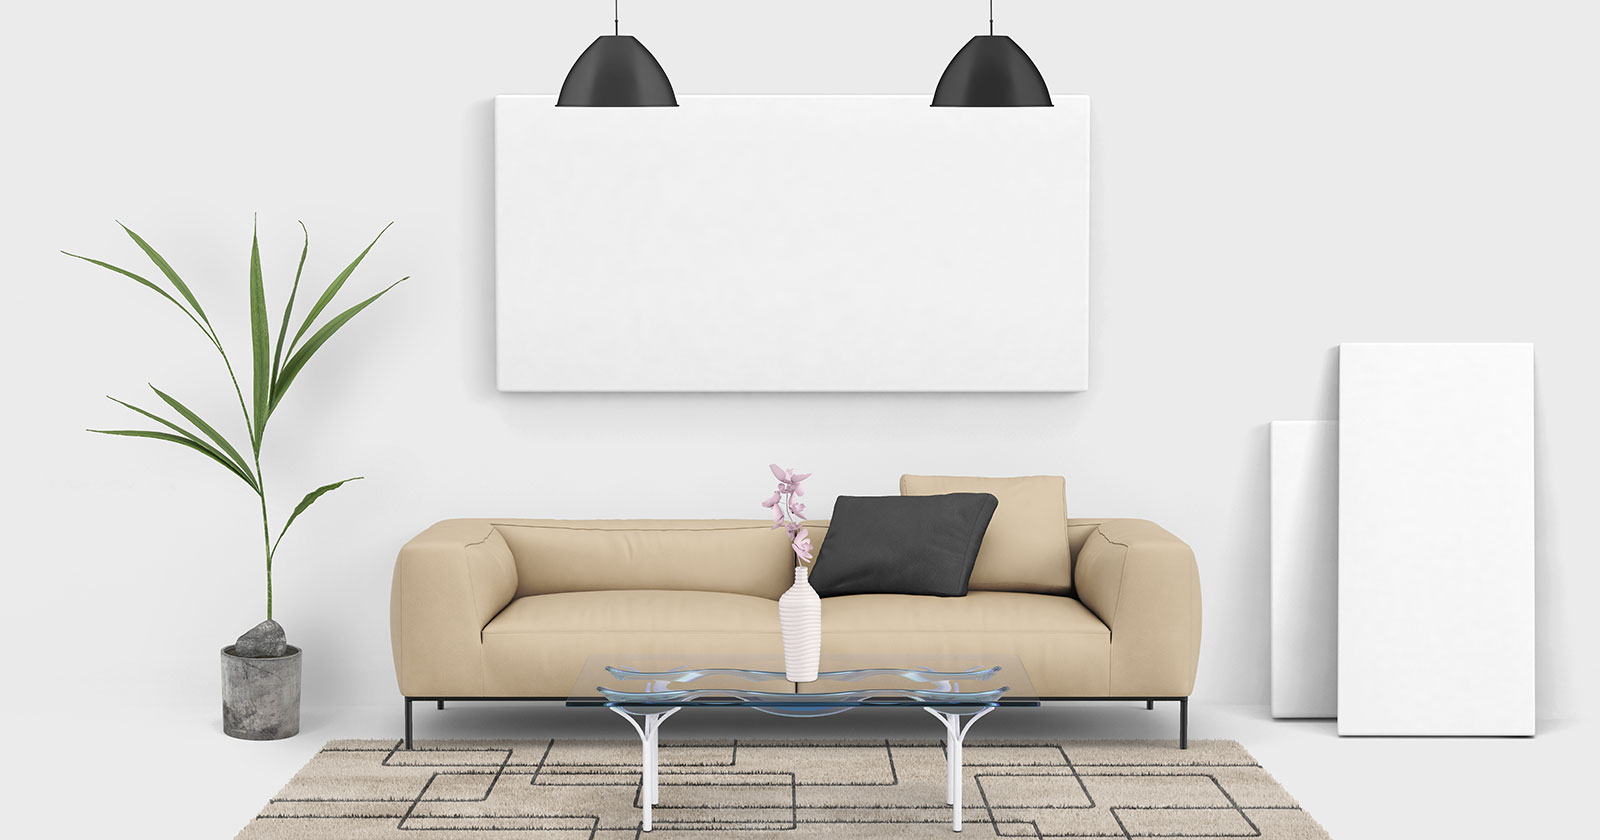 Free-Living-Room-Painting-Wall-Canvas-Mockup-PSD-2